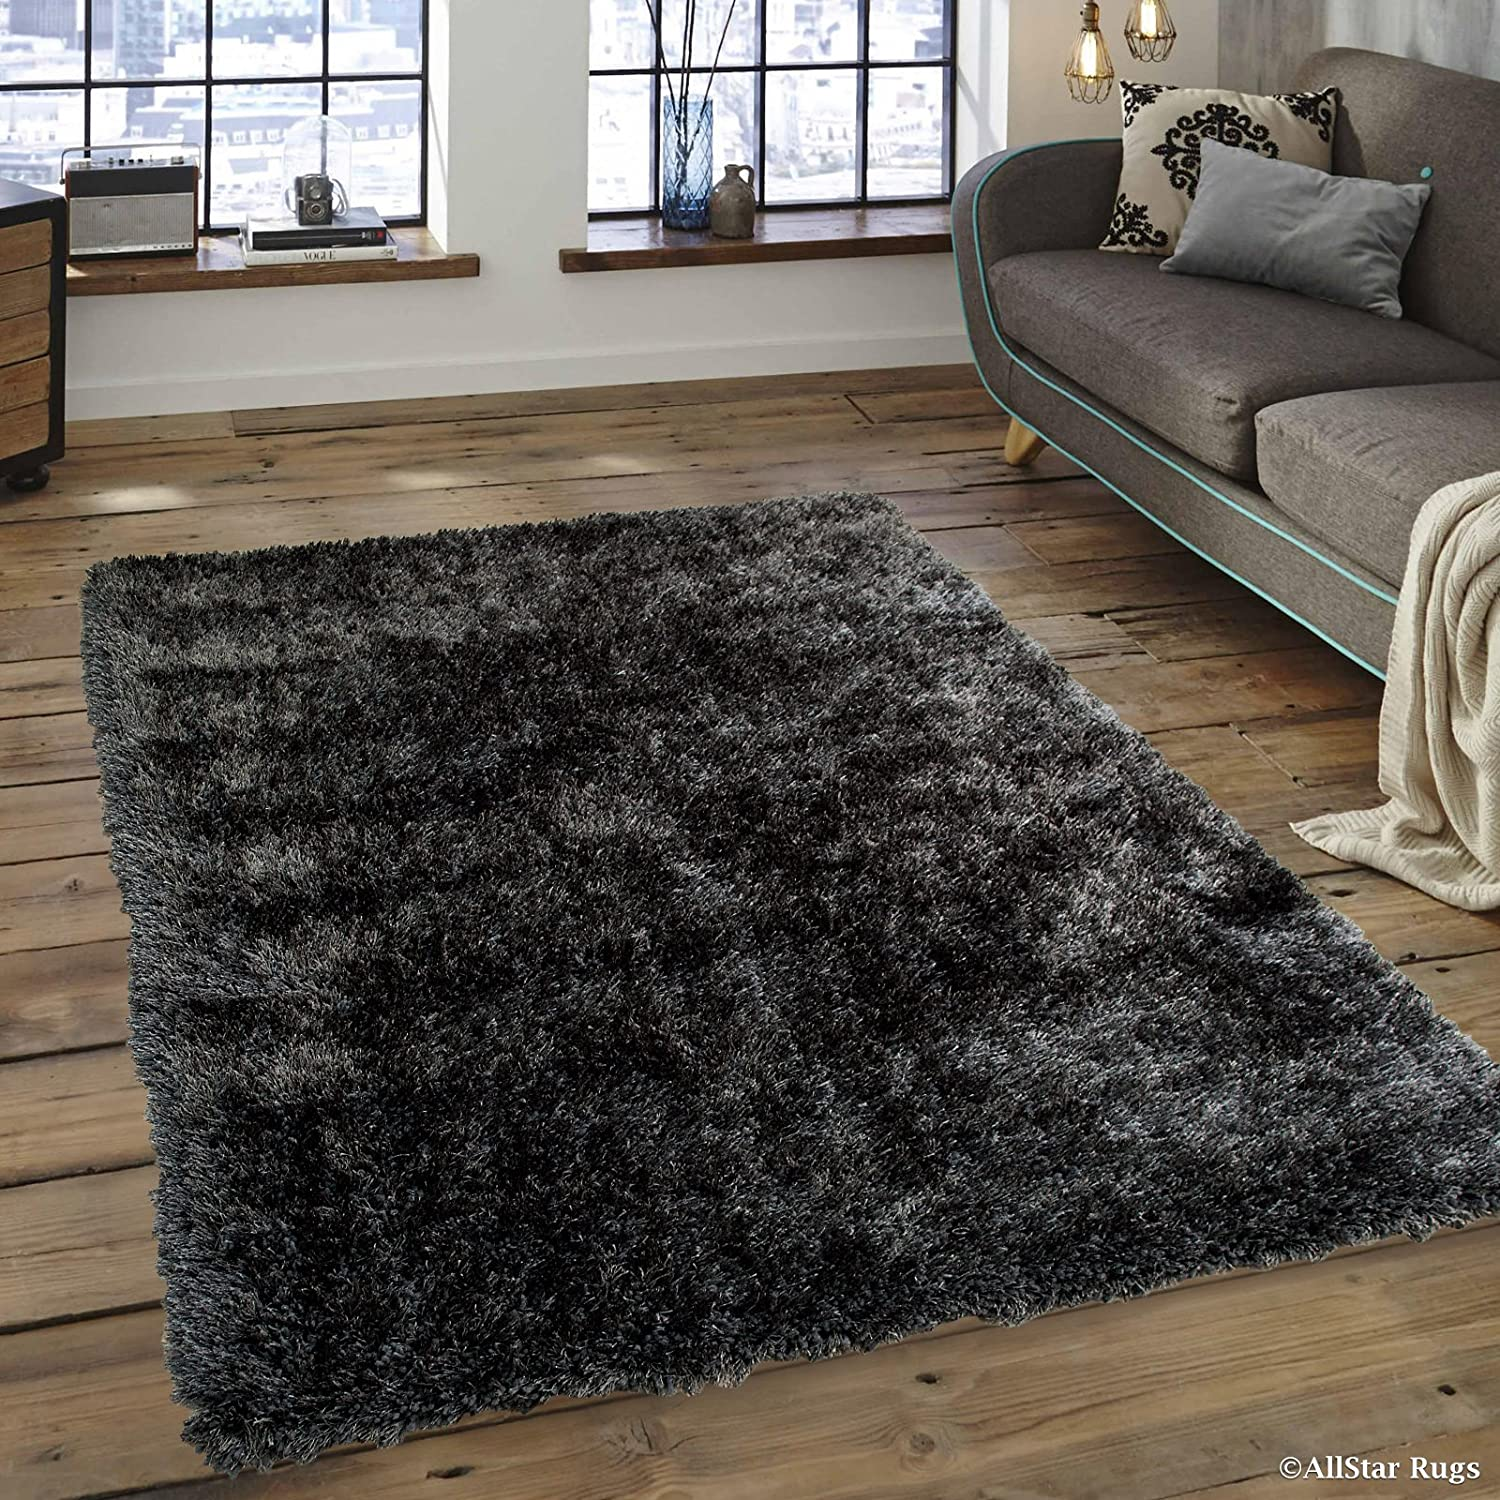 Amazon Com Allstar 4 X 5 Grey Chic Thick Soft And Shaggy Solid Area